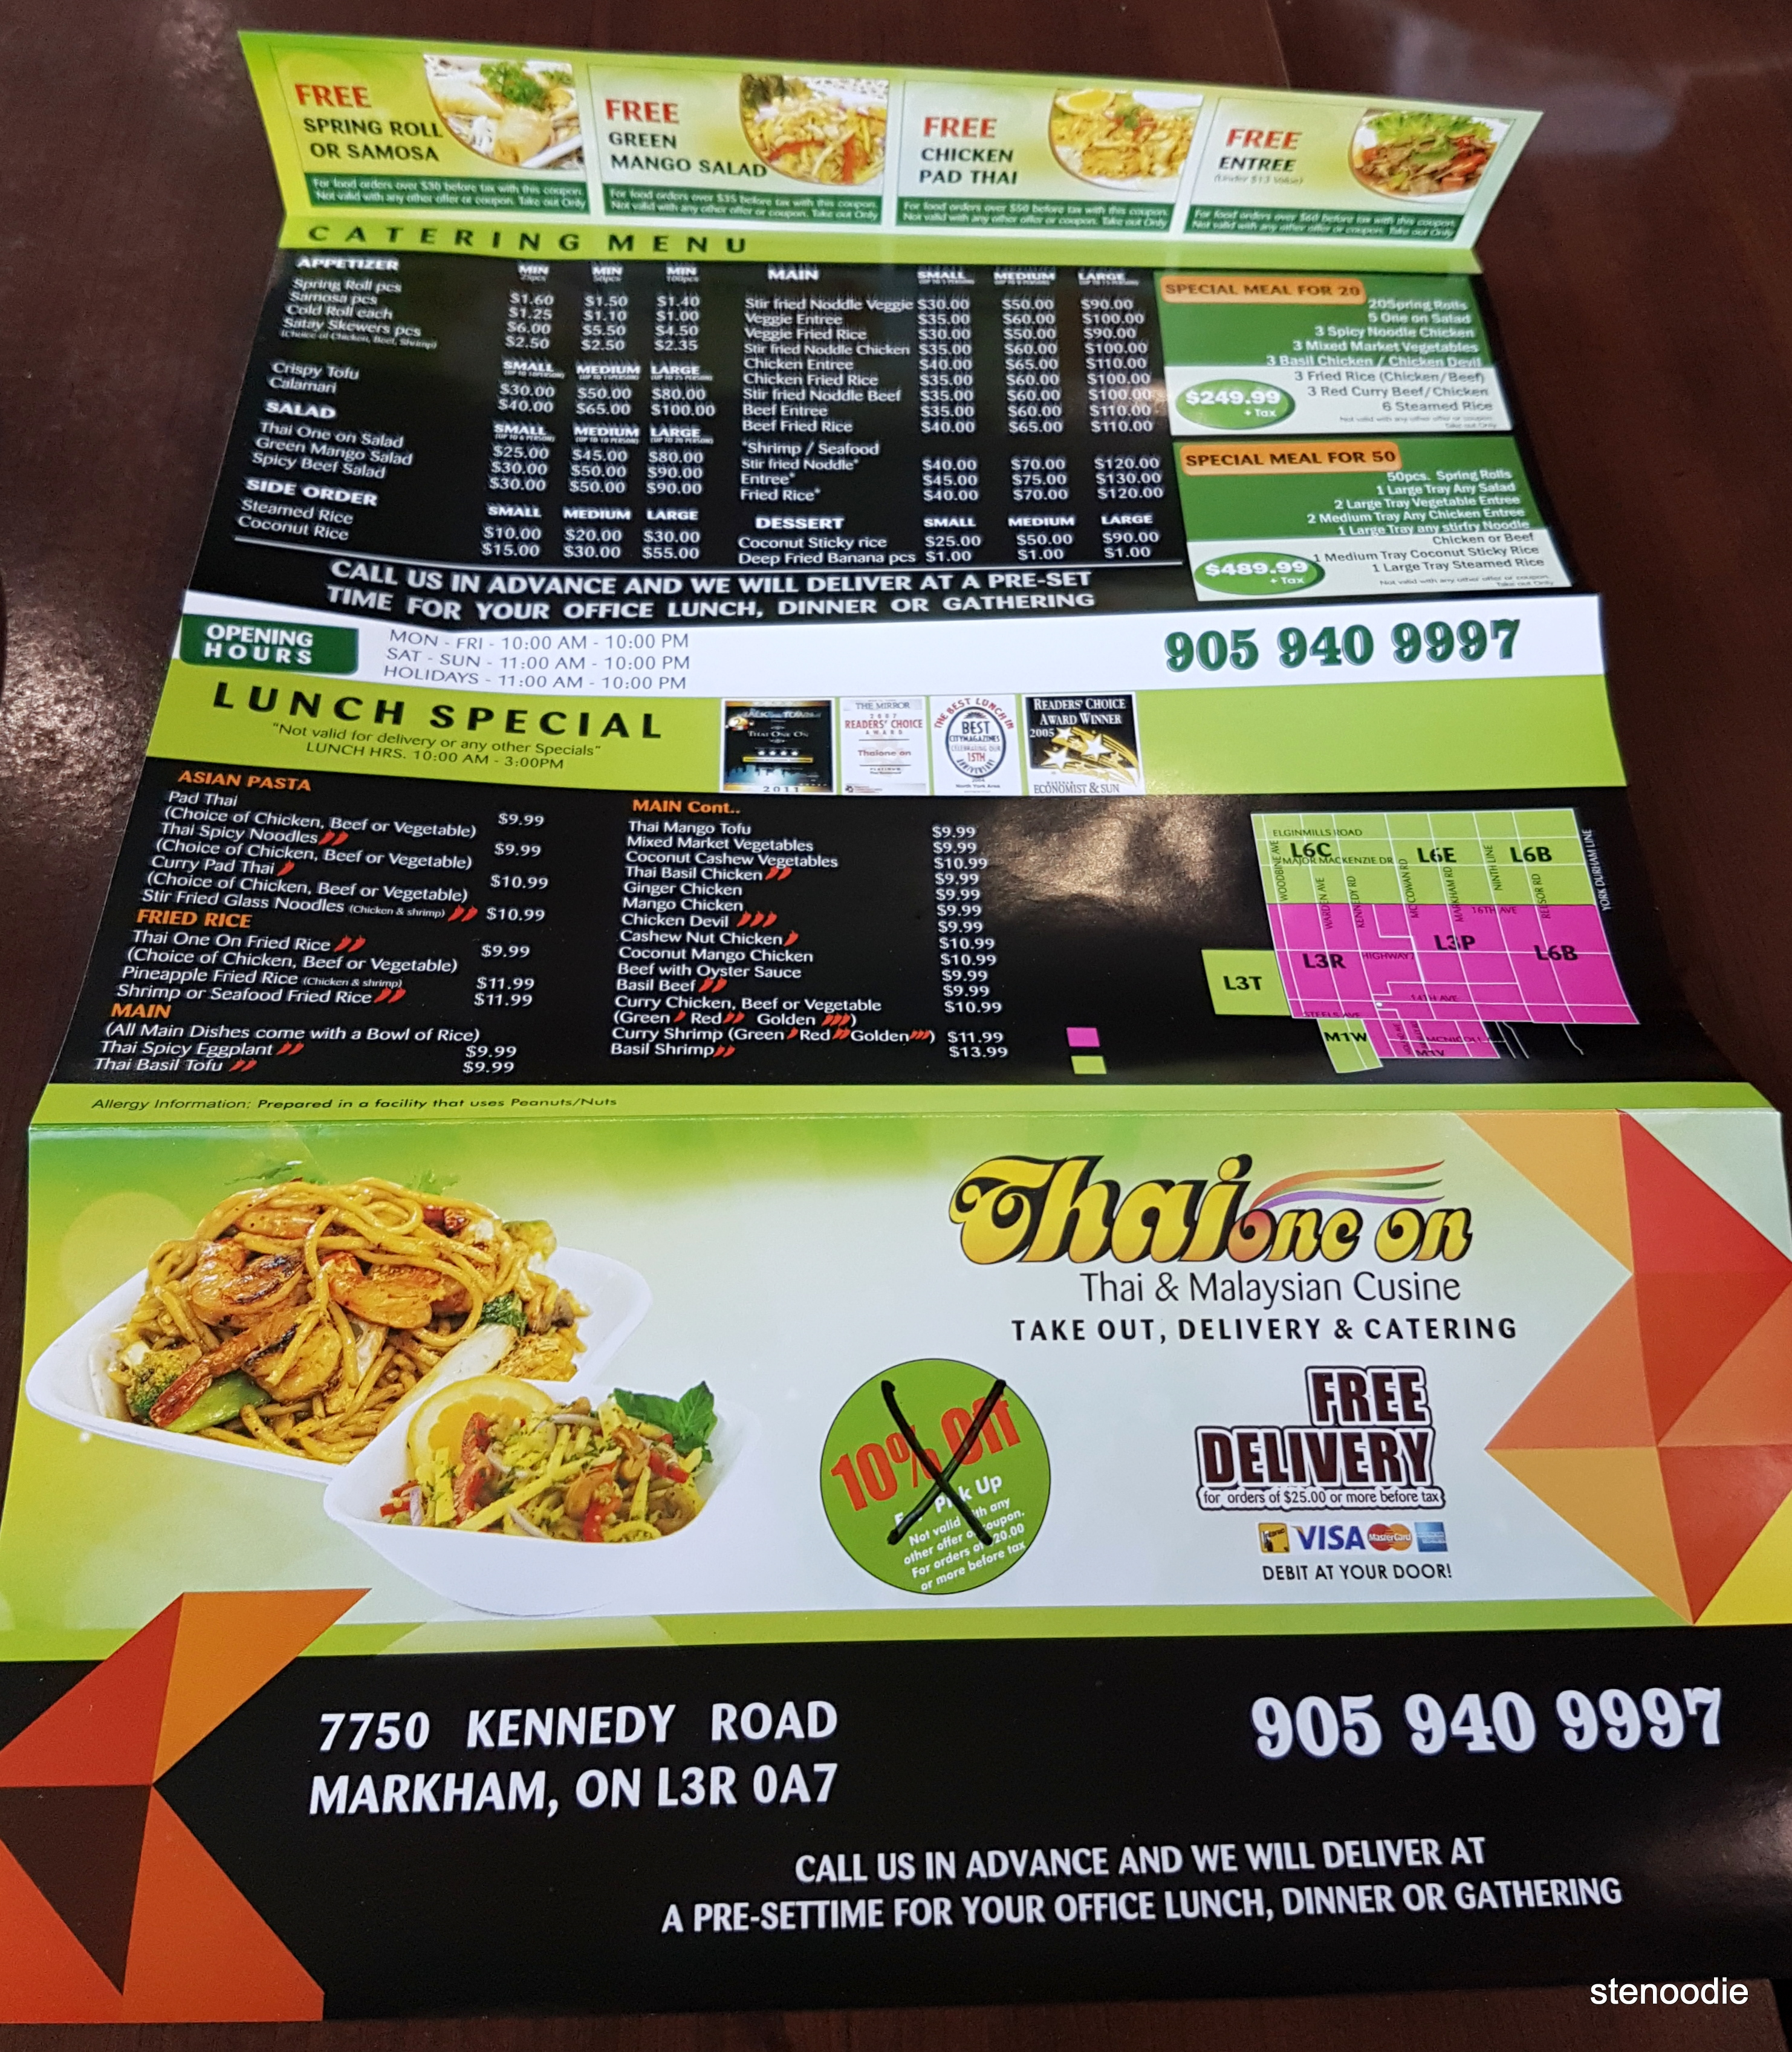 Thai One On menu and prices